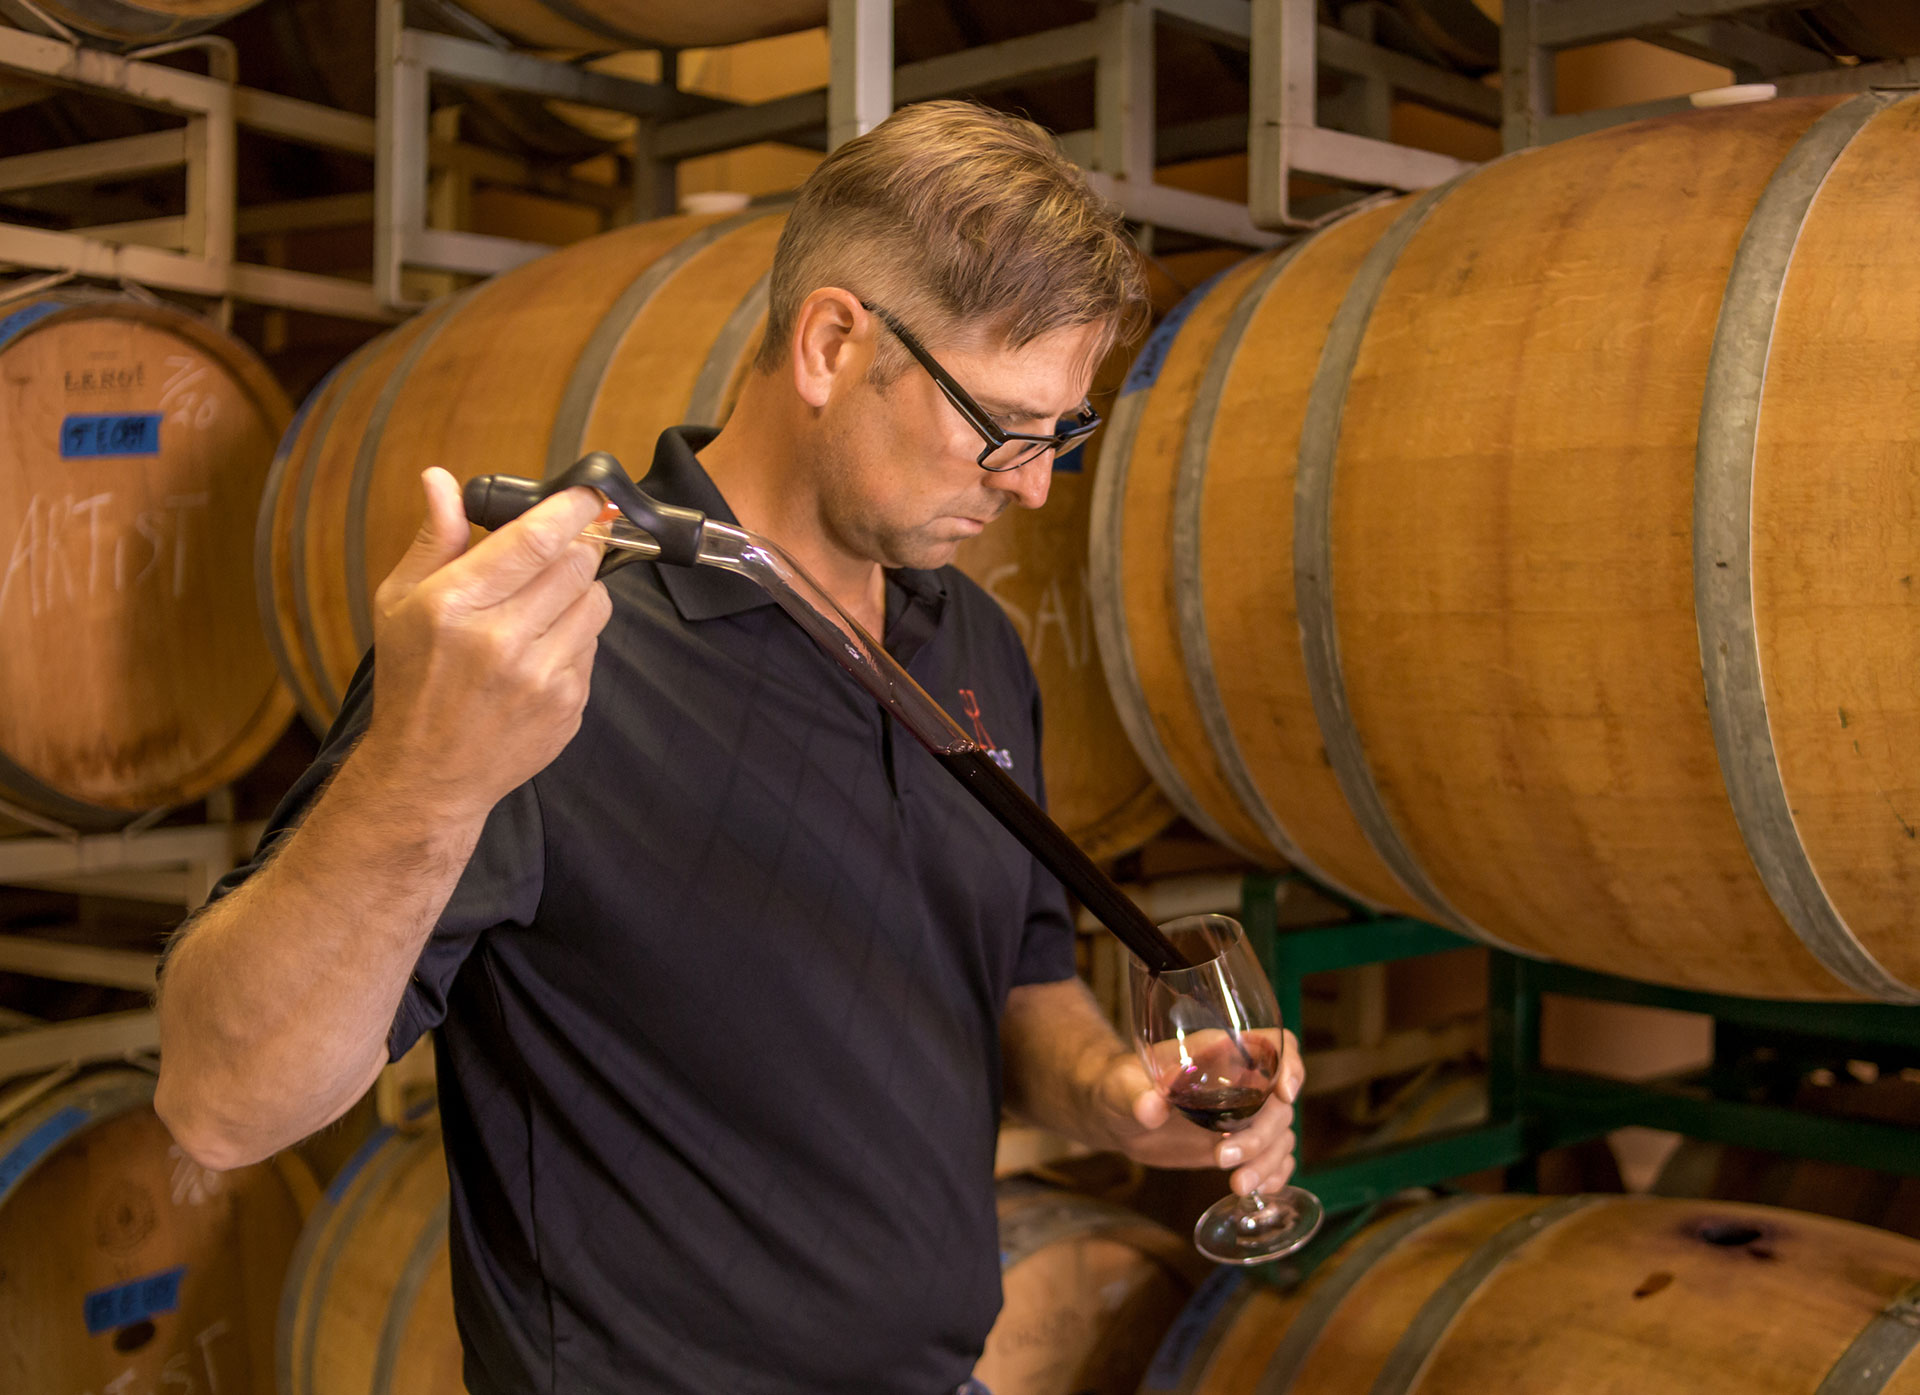 Ned Morris testing wine in front of barrels of wine.